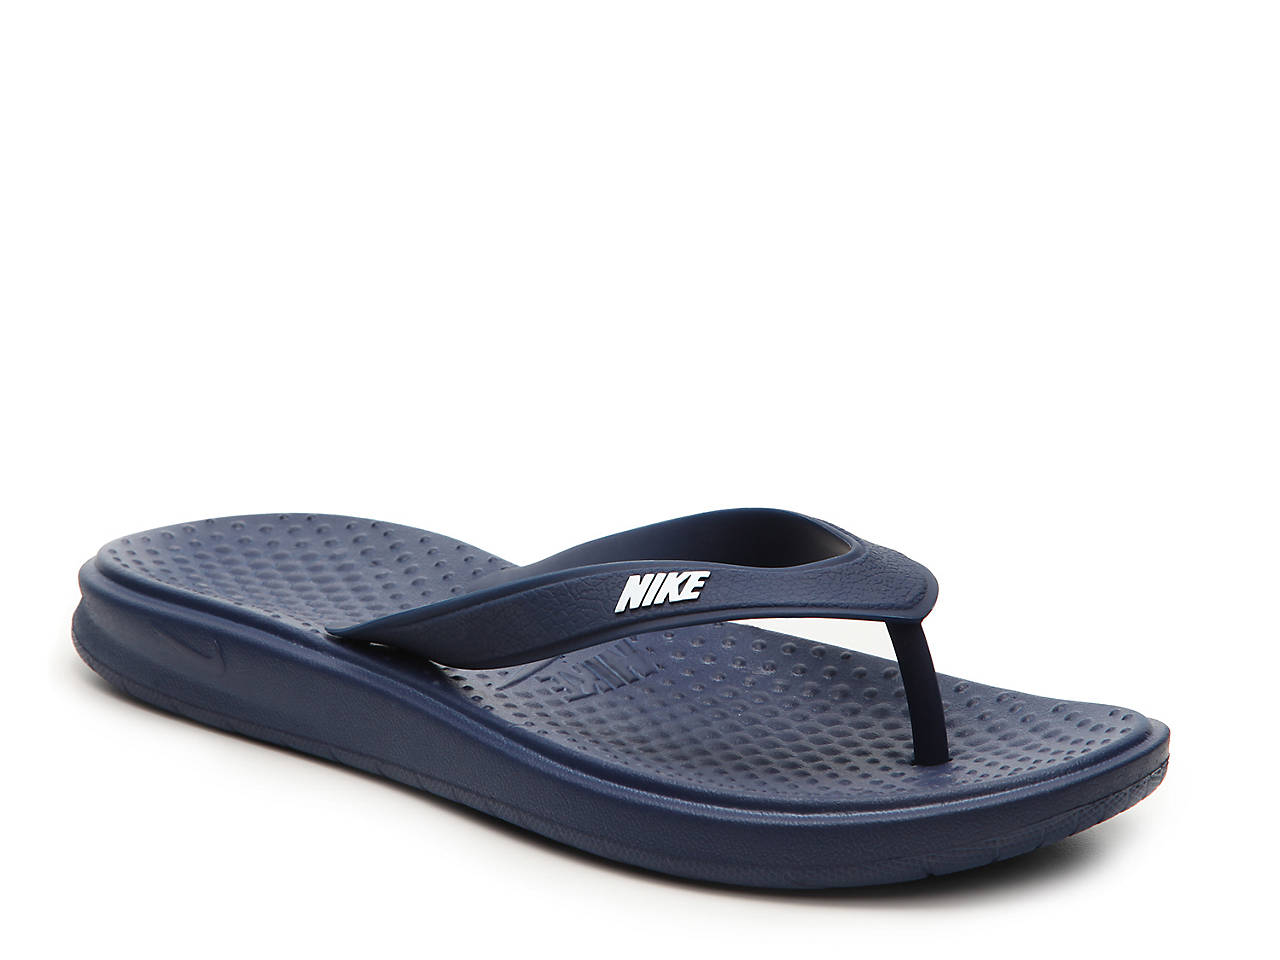 anthracite solarsoft black shoes p nike comfort summer discount slide footbed men comforter